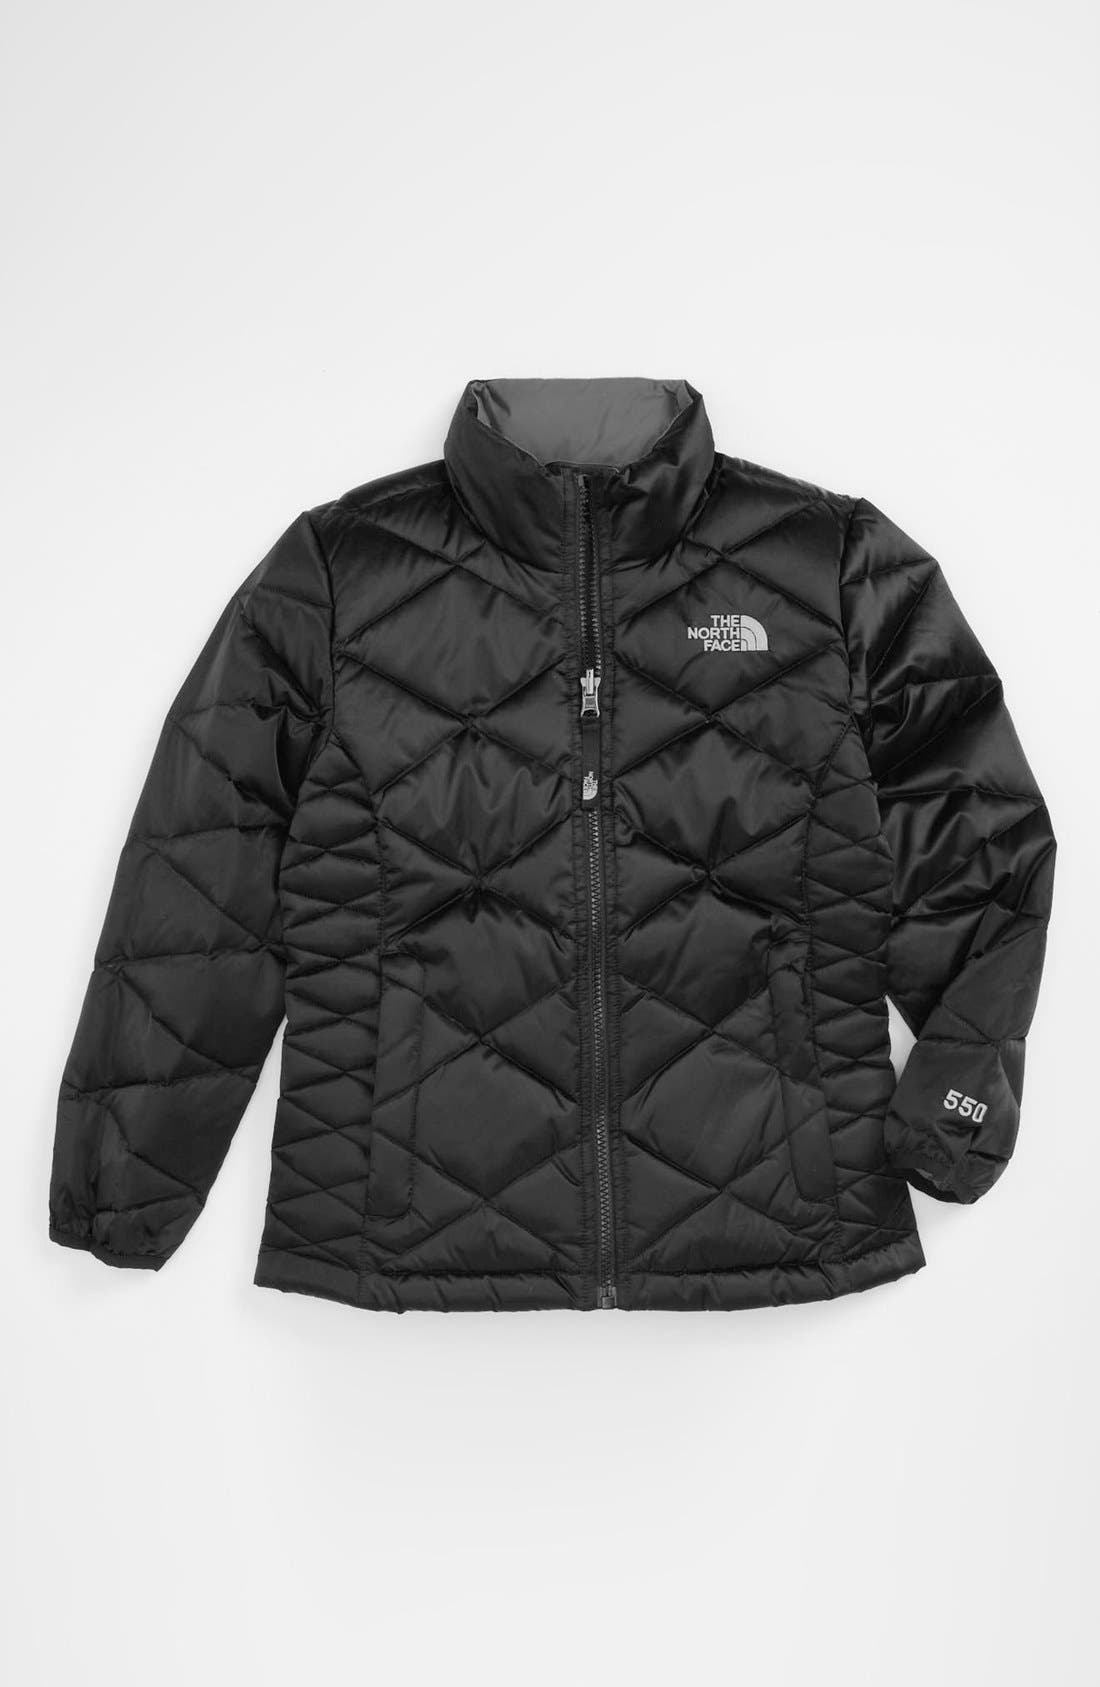 Alternate Image 1 Selected - The North Face 'Aconcagua' Jacket (Little Girls)